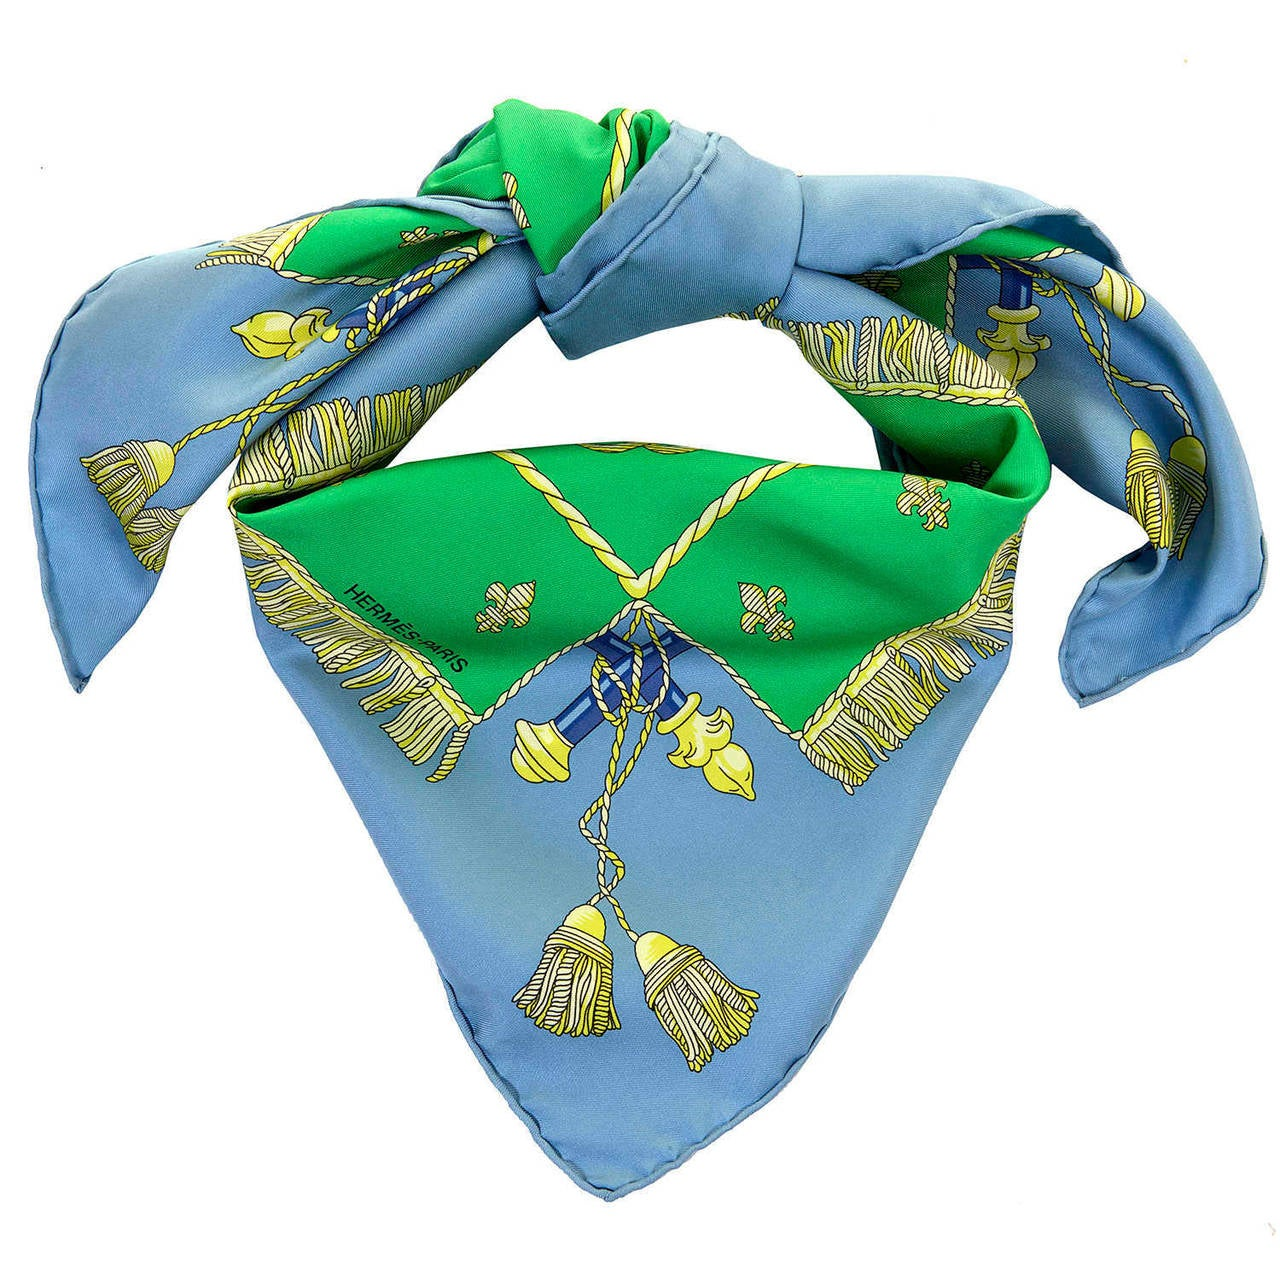 A VERY RARE Vintage Hermes Silk Scarf Designed in 1953 by Hugo Grygkar 2